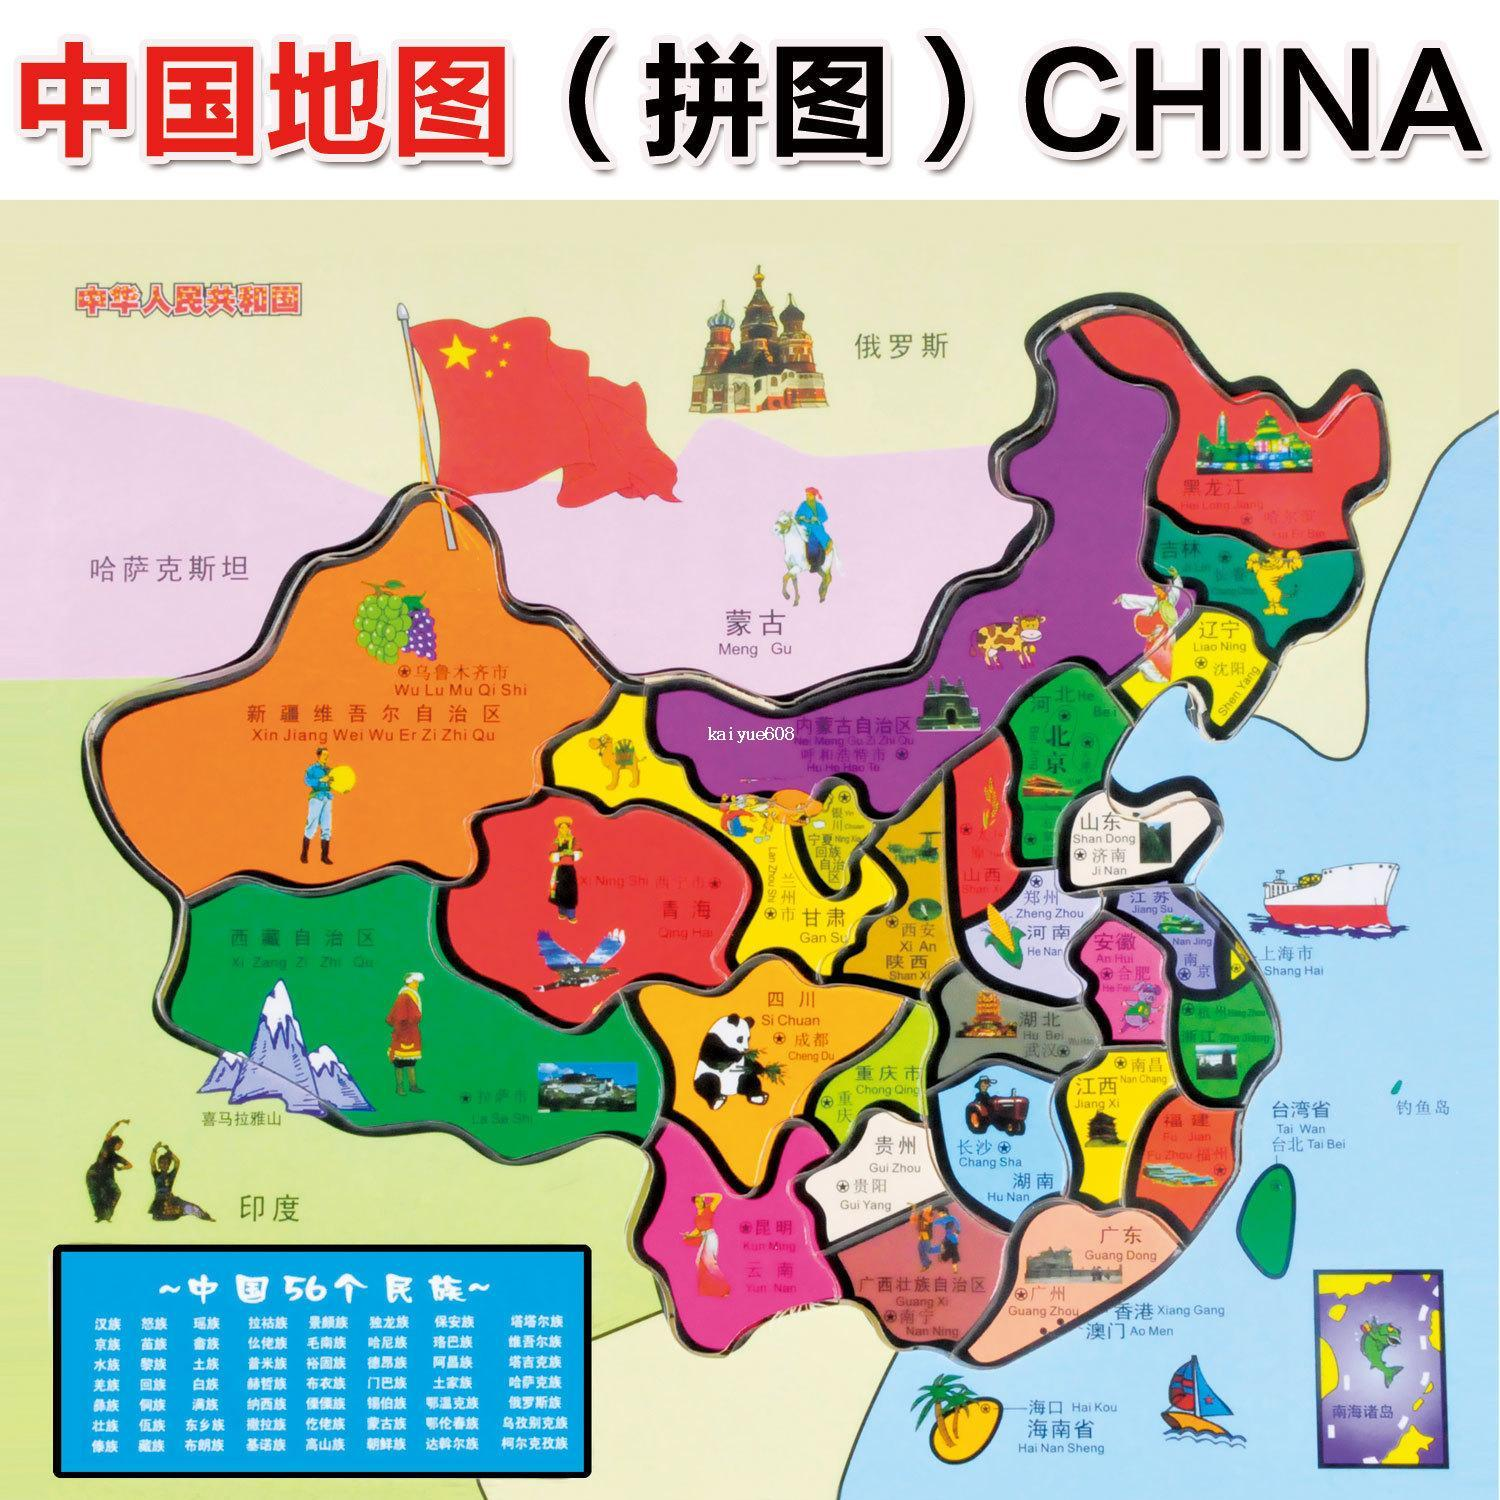 Map Of China Puzzle Diy Handmade Preschool Toy Toy Box Free Shipping Preschool Toy Toys R Us Free Shipping Online With 22 92 Piece On Kaiyue608 S Store